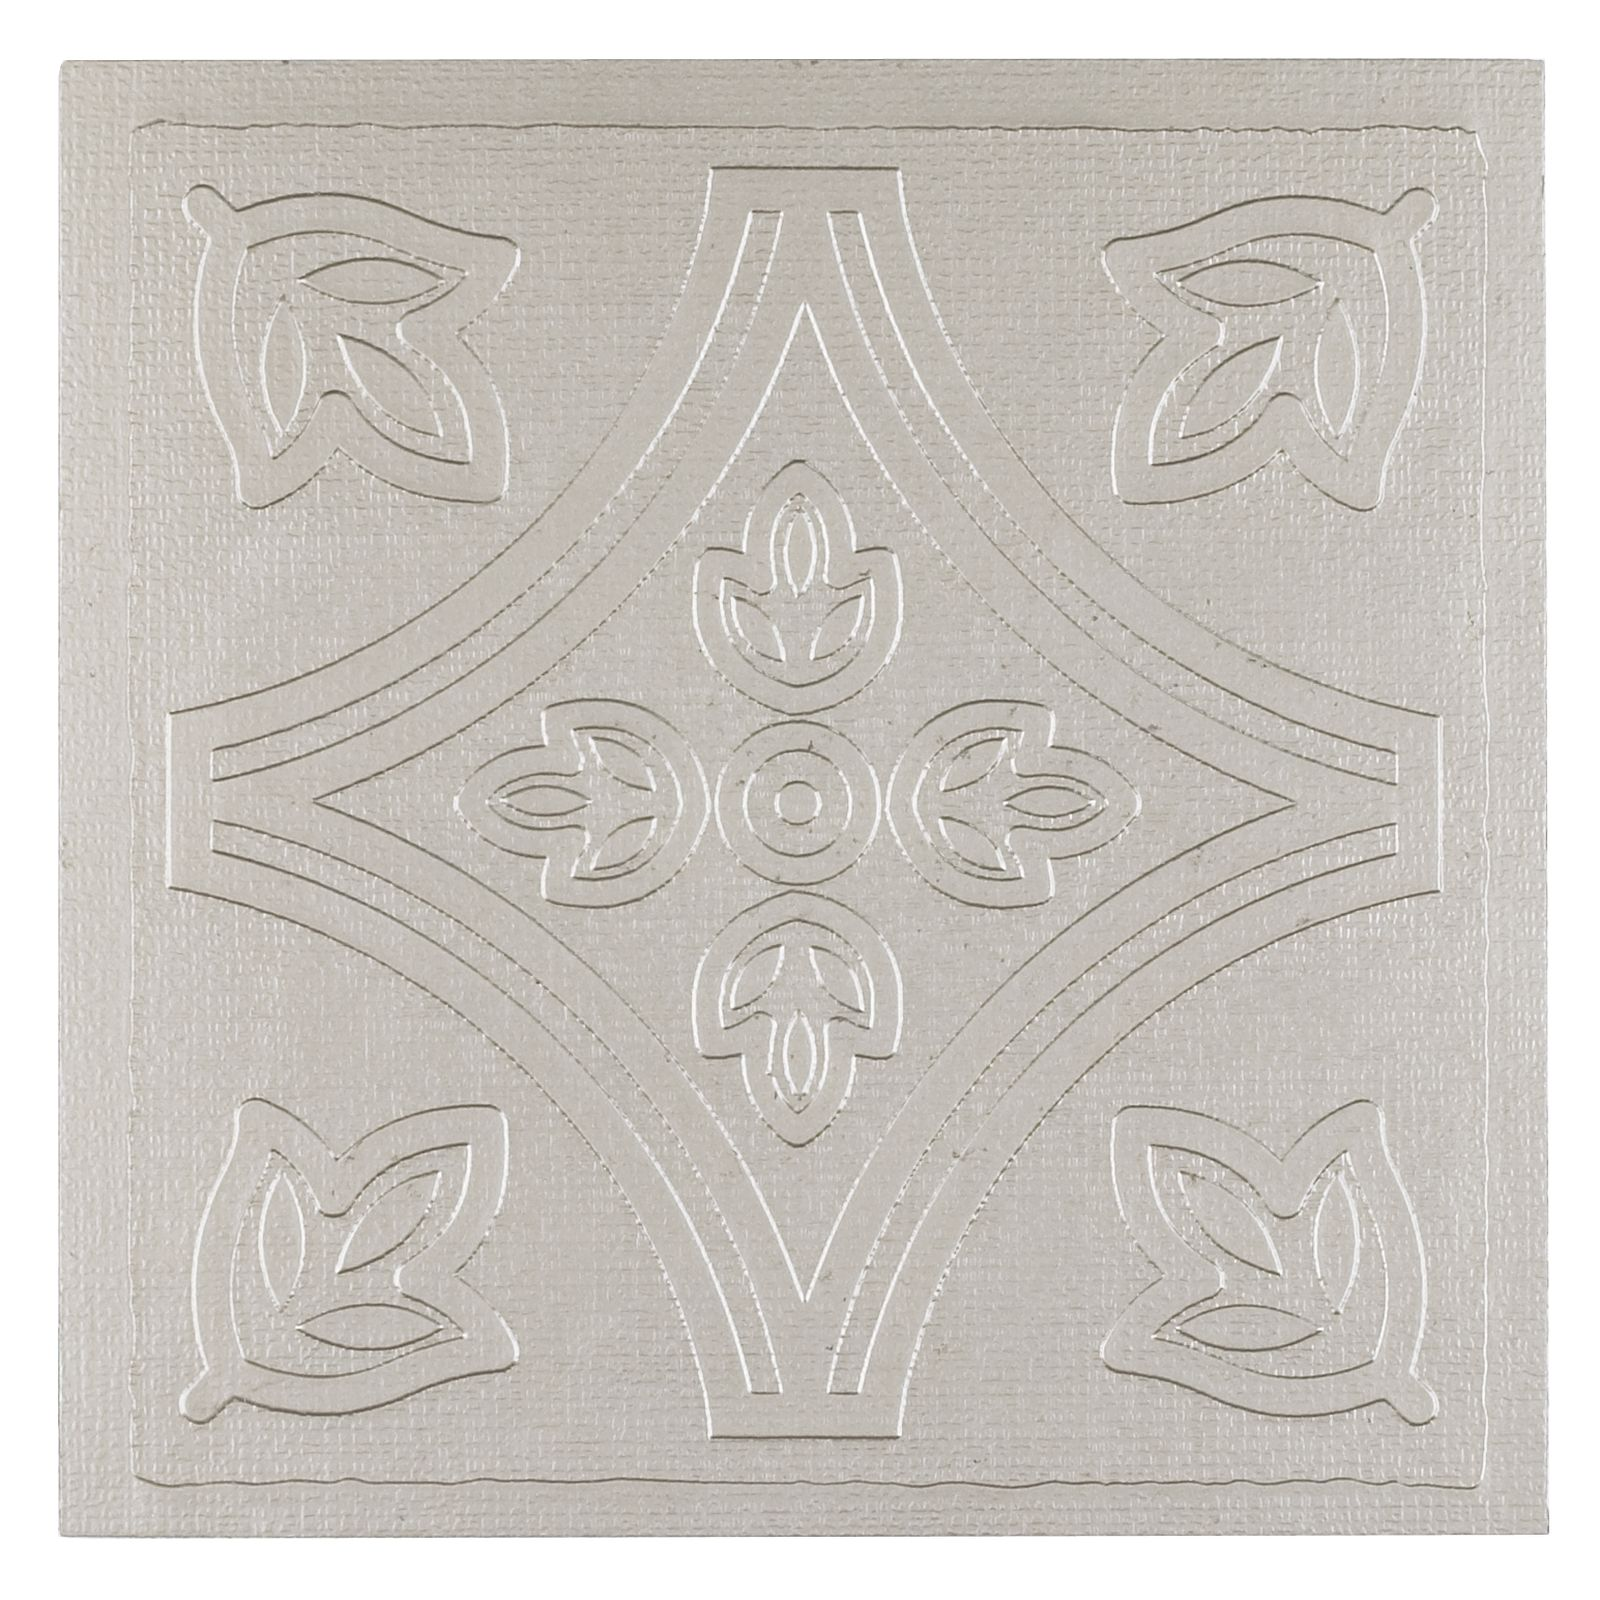 Metallo 4x4 Self Adhesive Vinyl Wall Tile - 27 Tiles/3 sq. Ft.